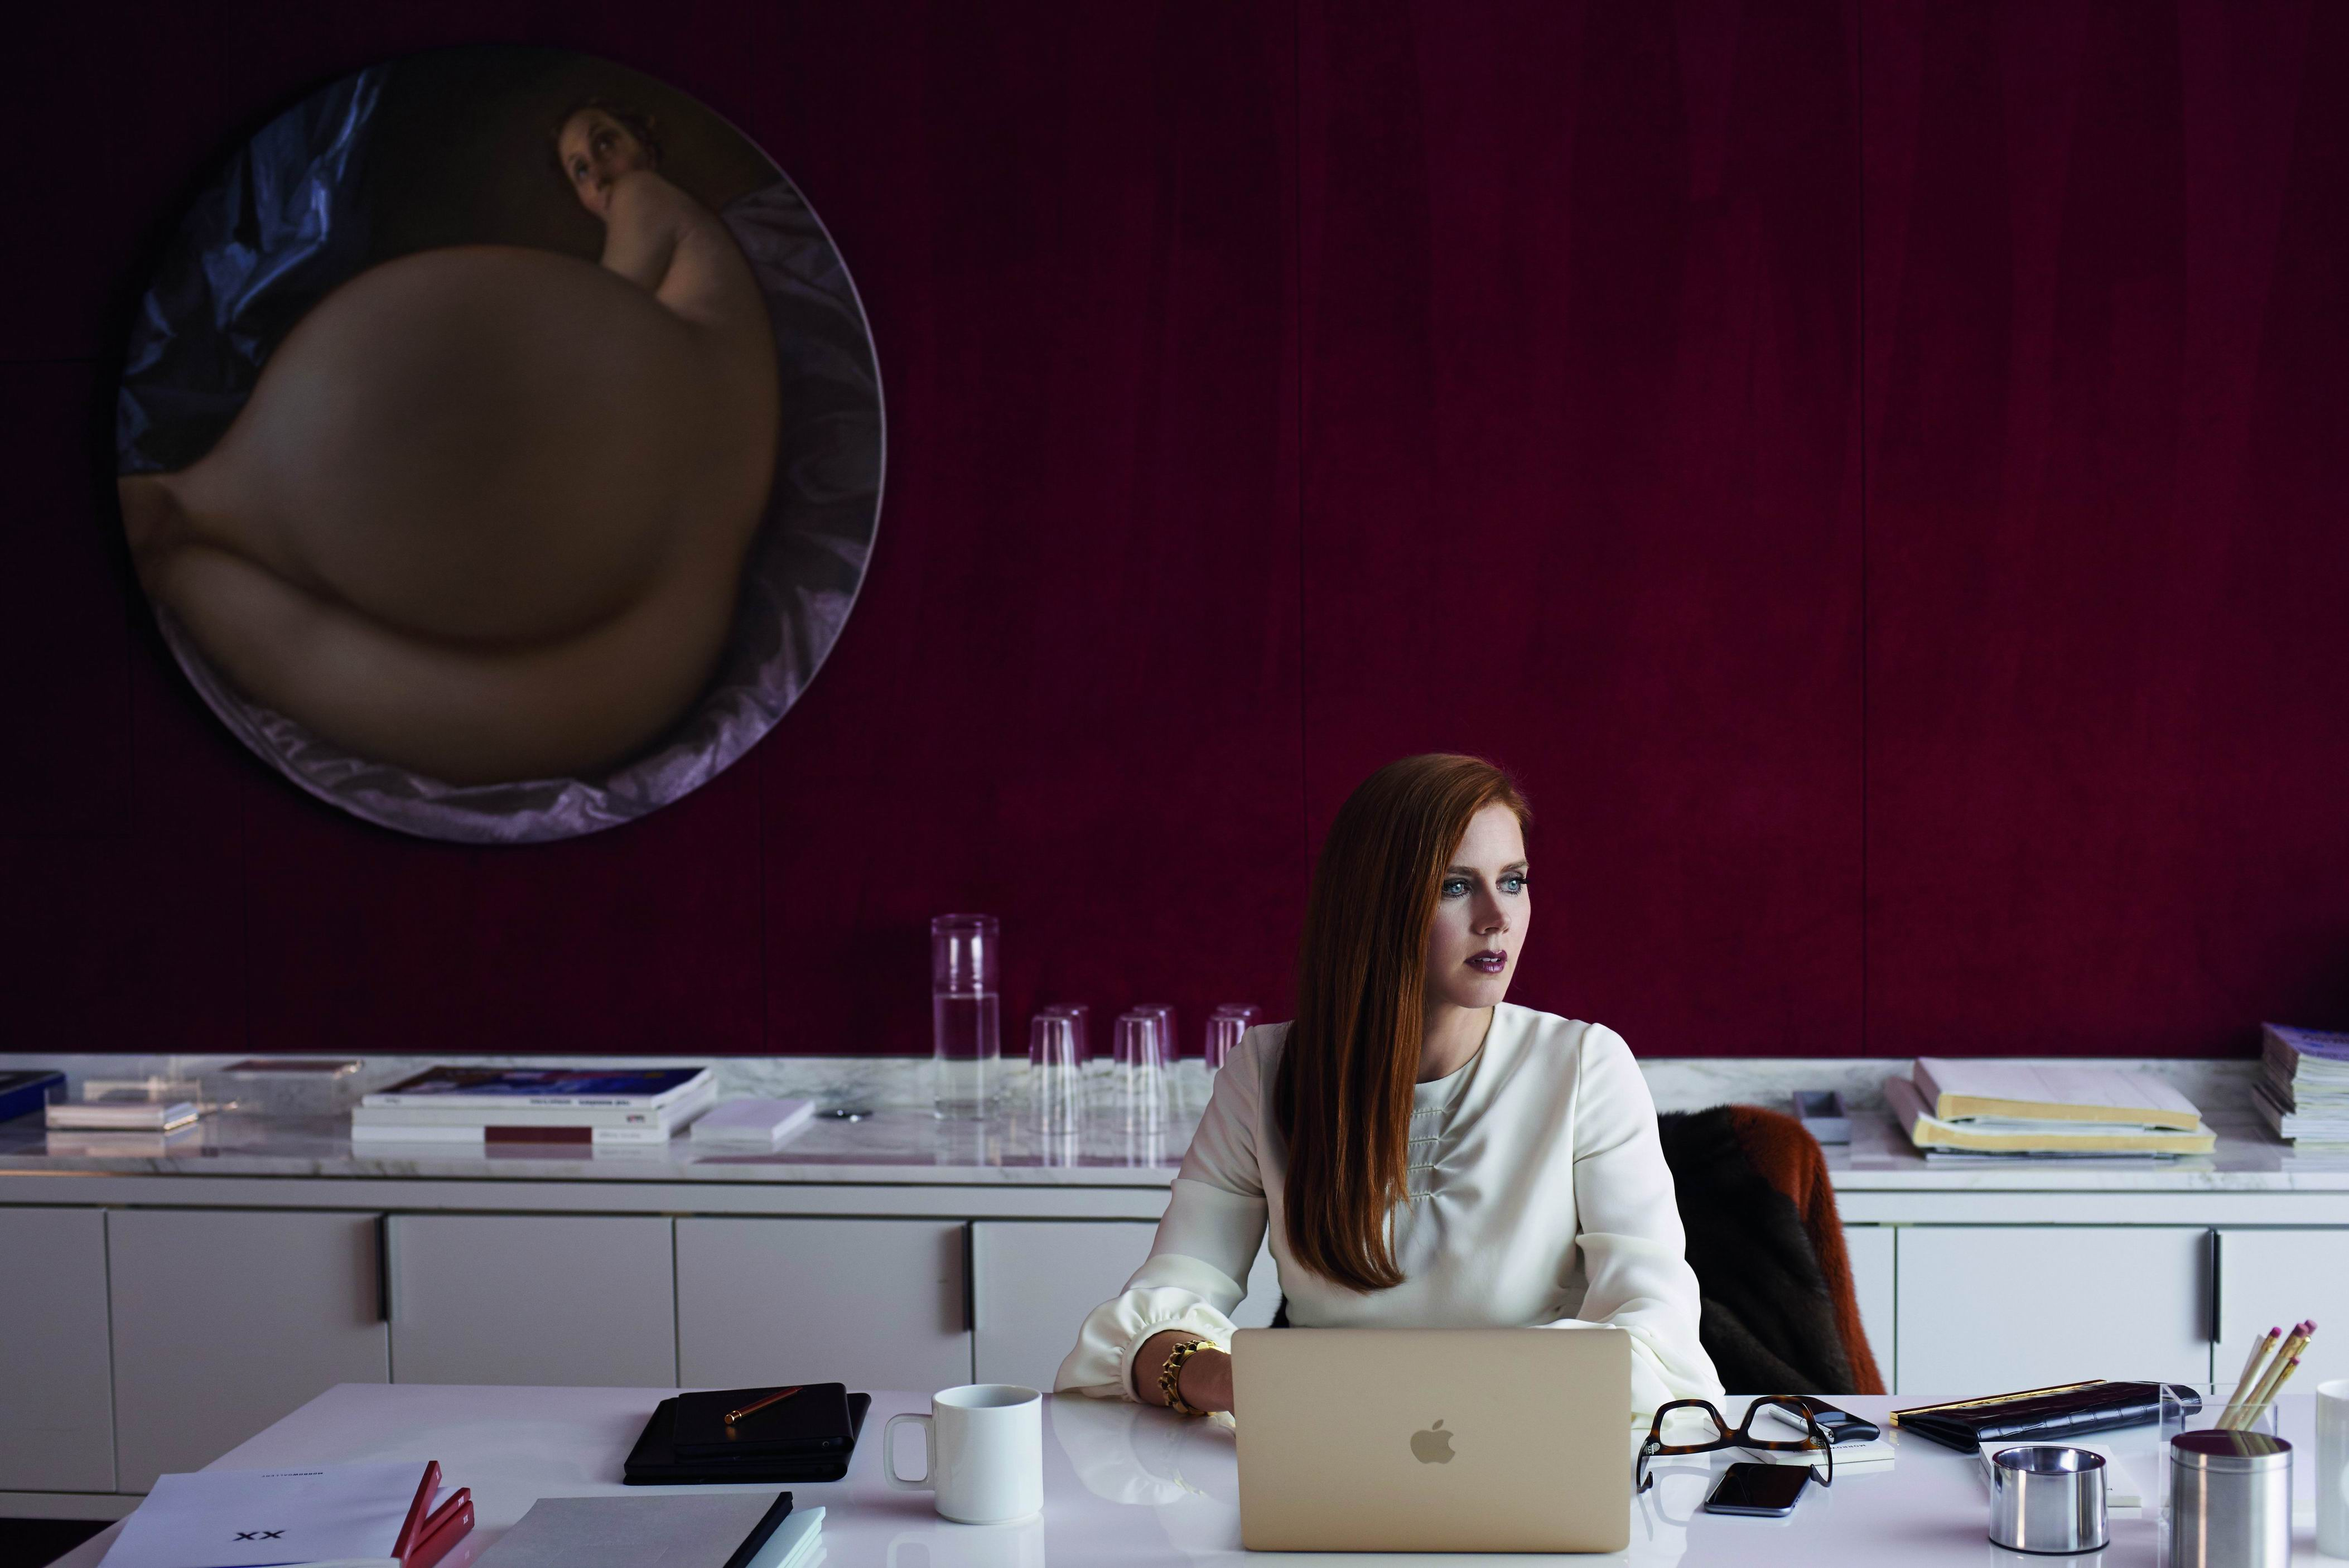 Academy Award nominee Amy Adams stars as Susan Morrow in writer/director Tom Ford's romantic thriller Nocturnal Animals. Picture: Merrick Morton/Focus Features